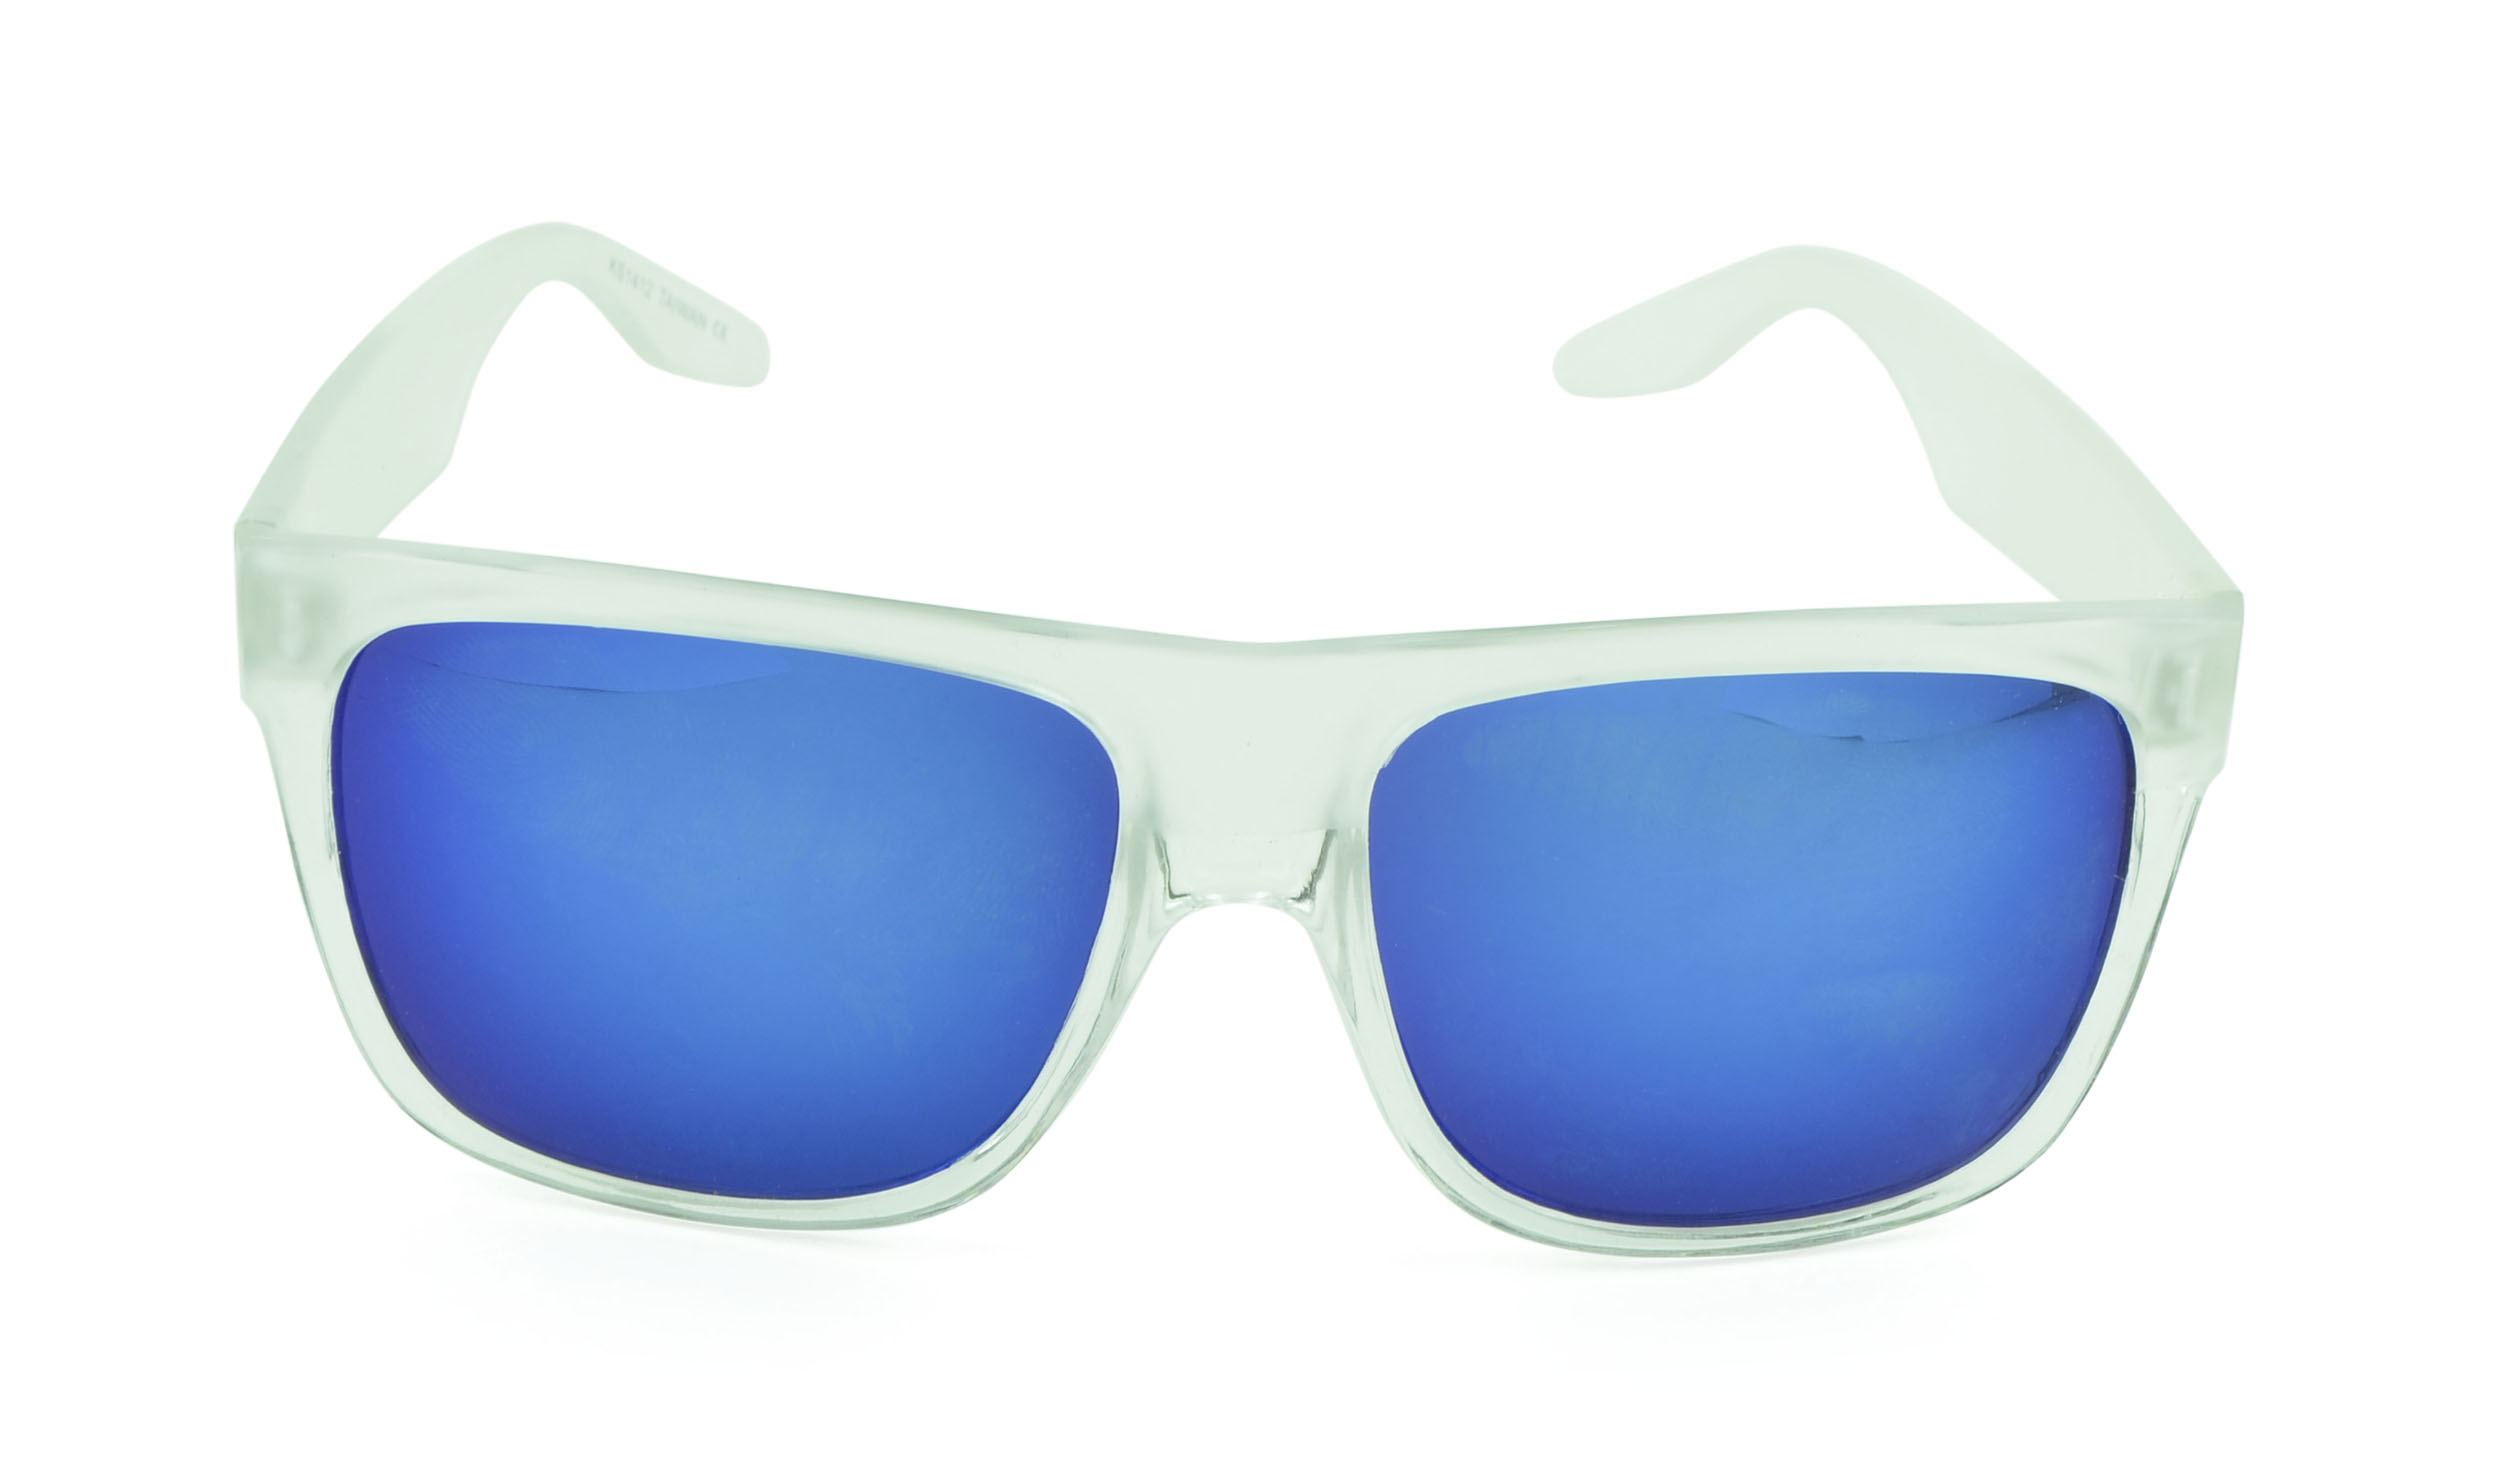 Belle Donne - Women and Men's Trendy Sunglasses - Assorted Colors - Blue One Size